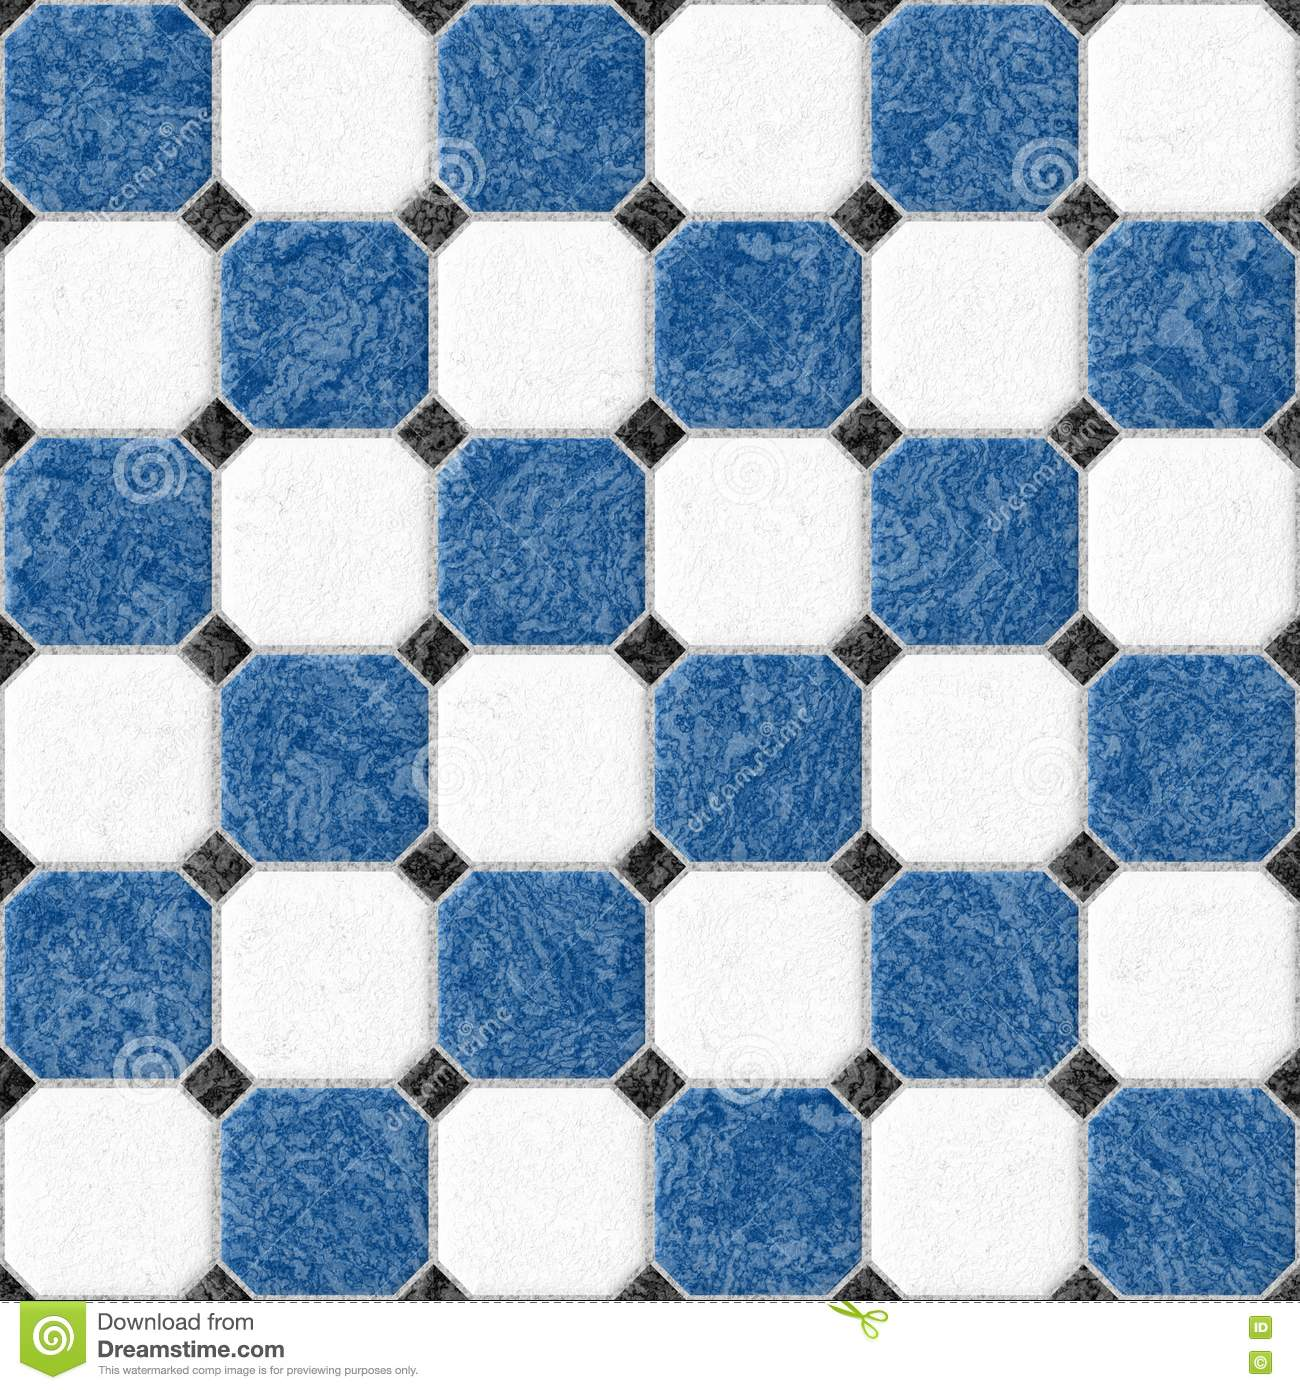 Bathroom Tiles Blue And White